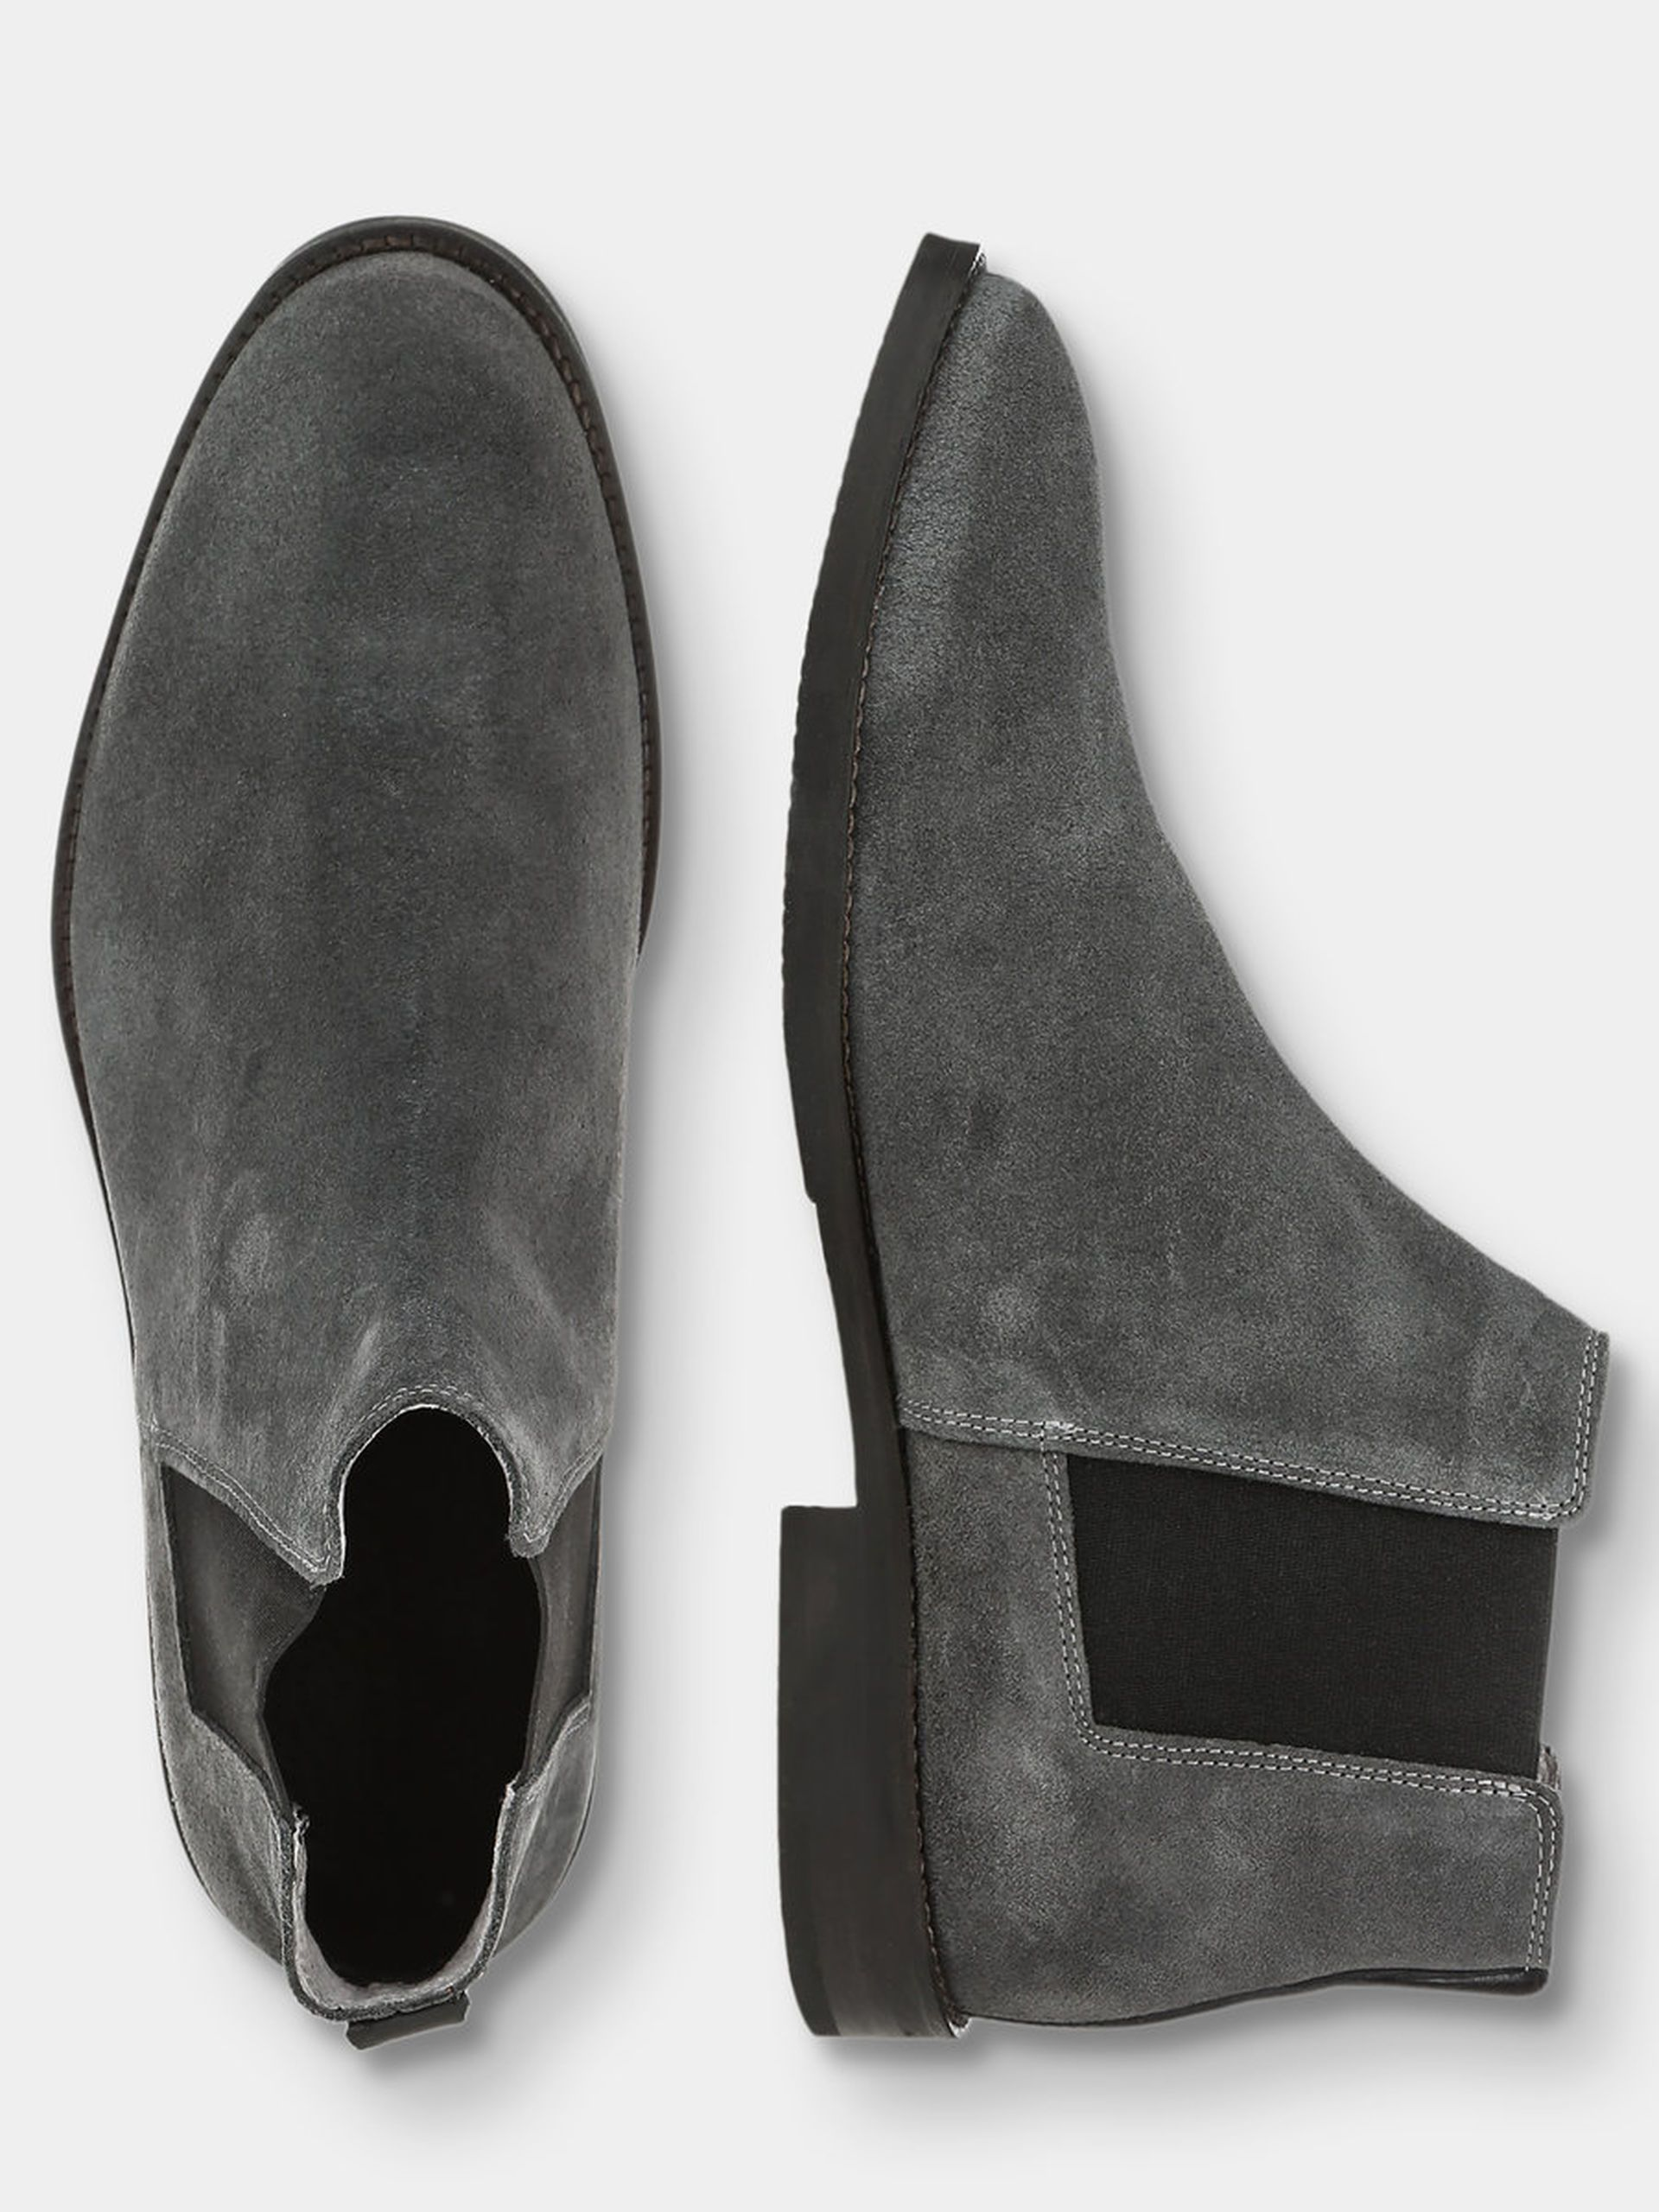 CHELSEA BOOTS BIANCO | Dress shoes, Mens suede boots, Mens